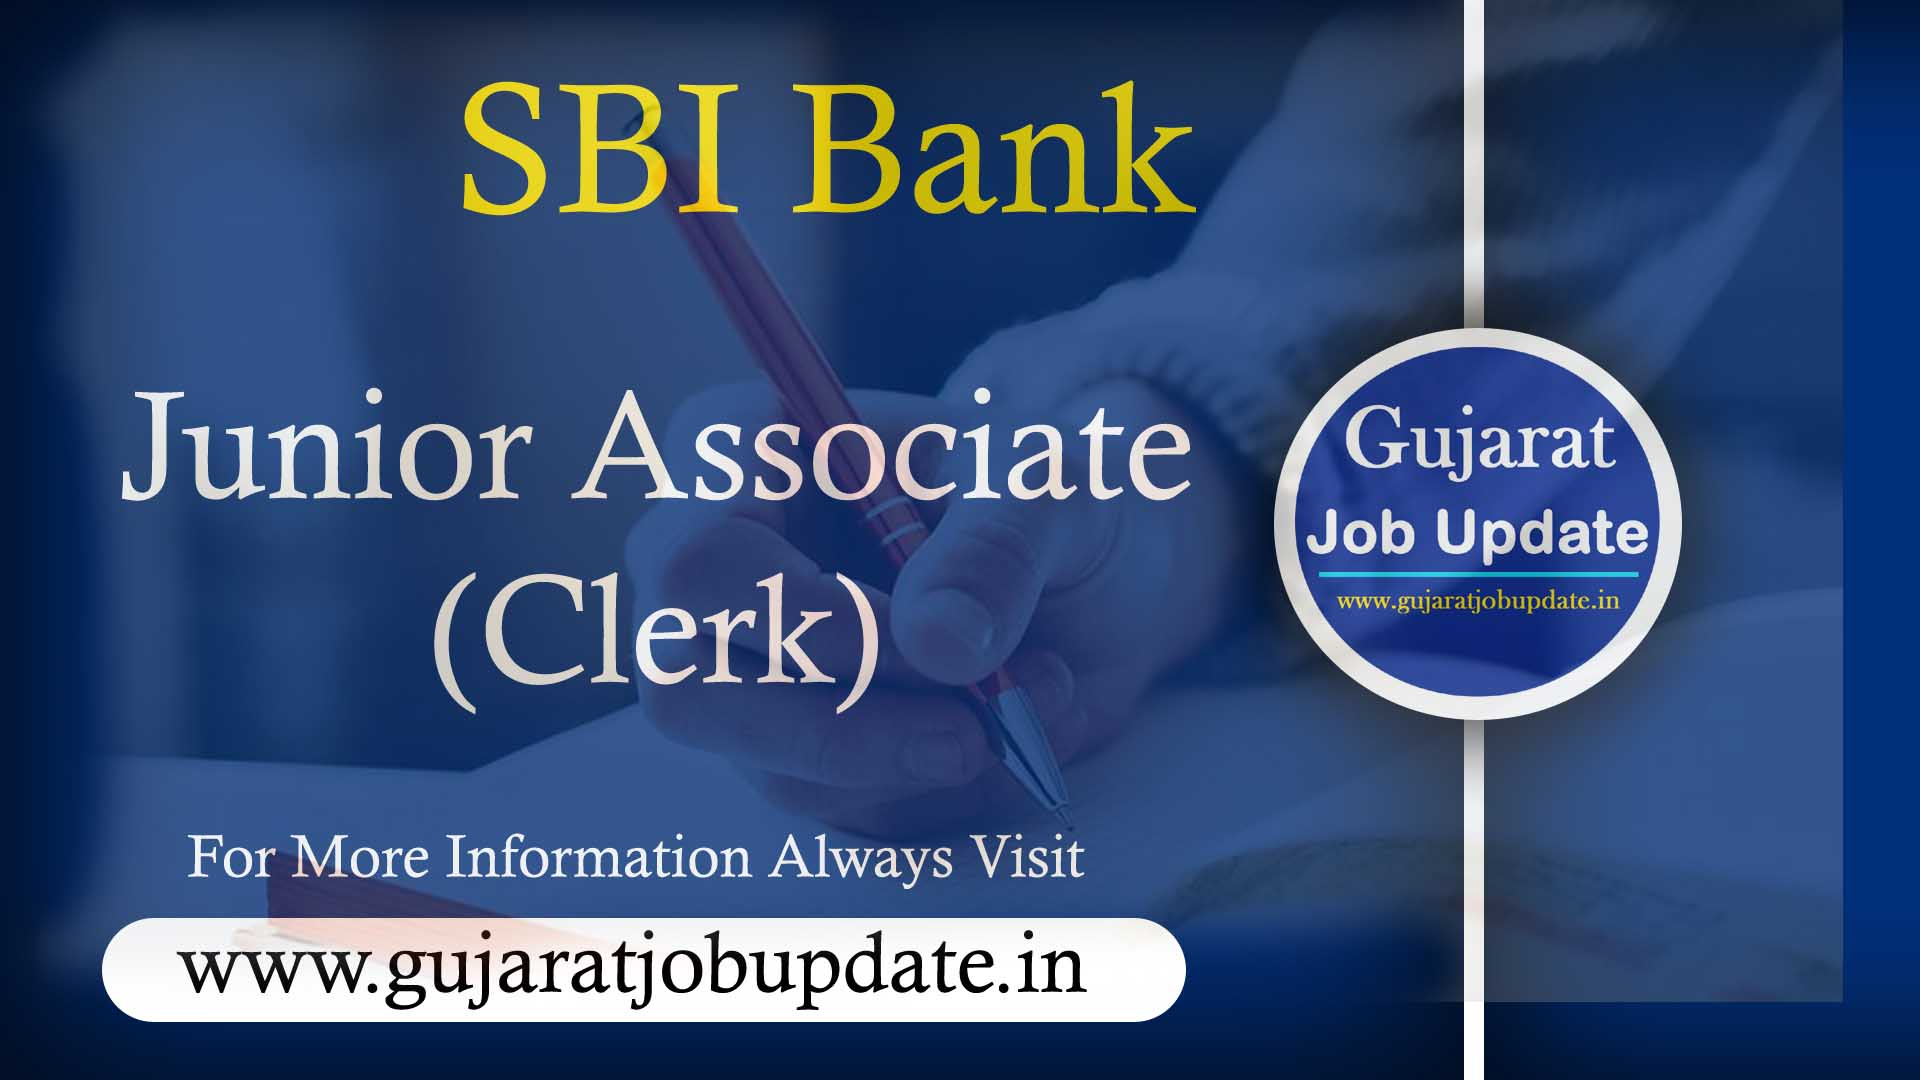 State Bank of India Recruitment for Clerk Posts 2021